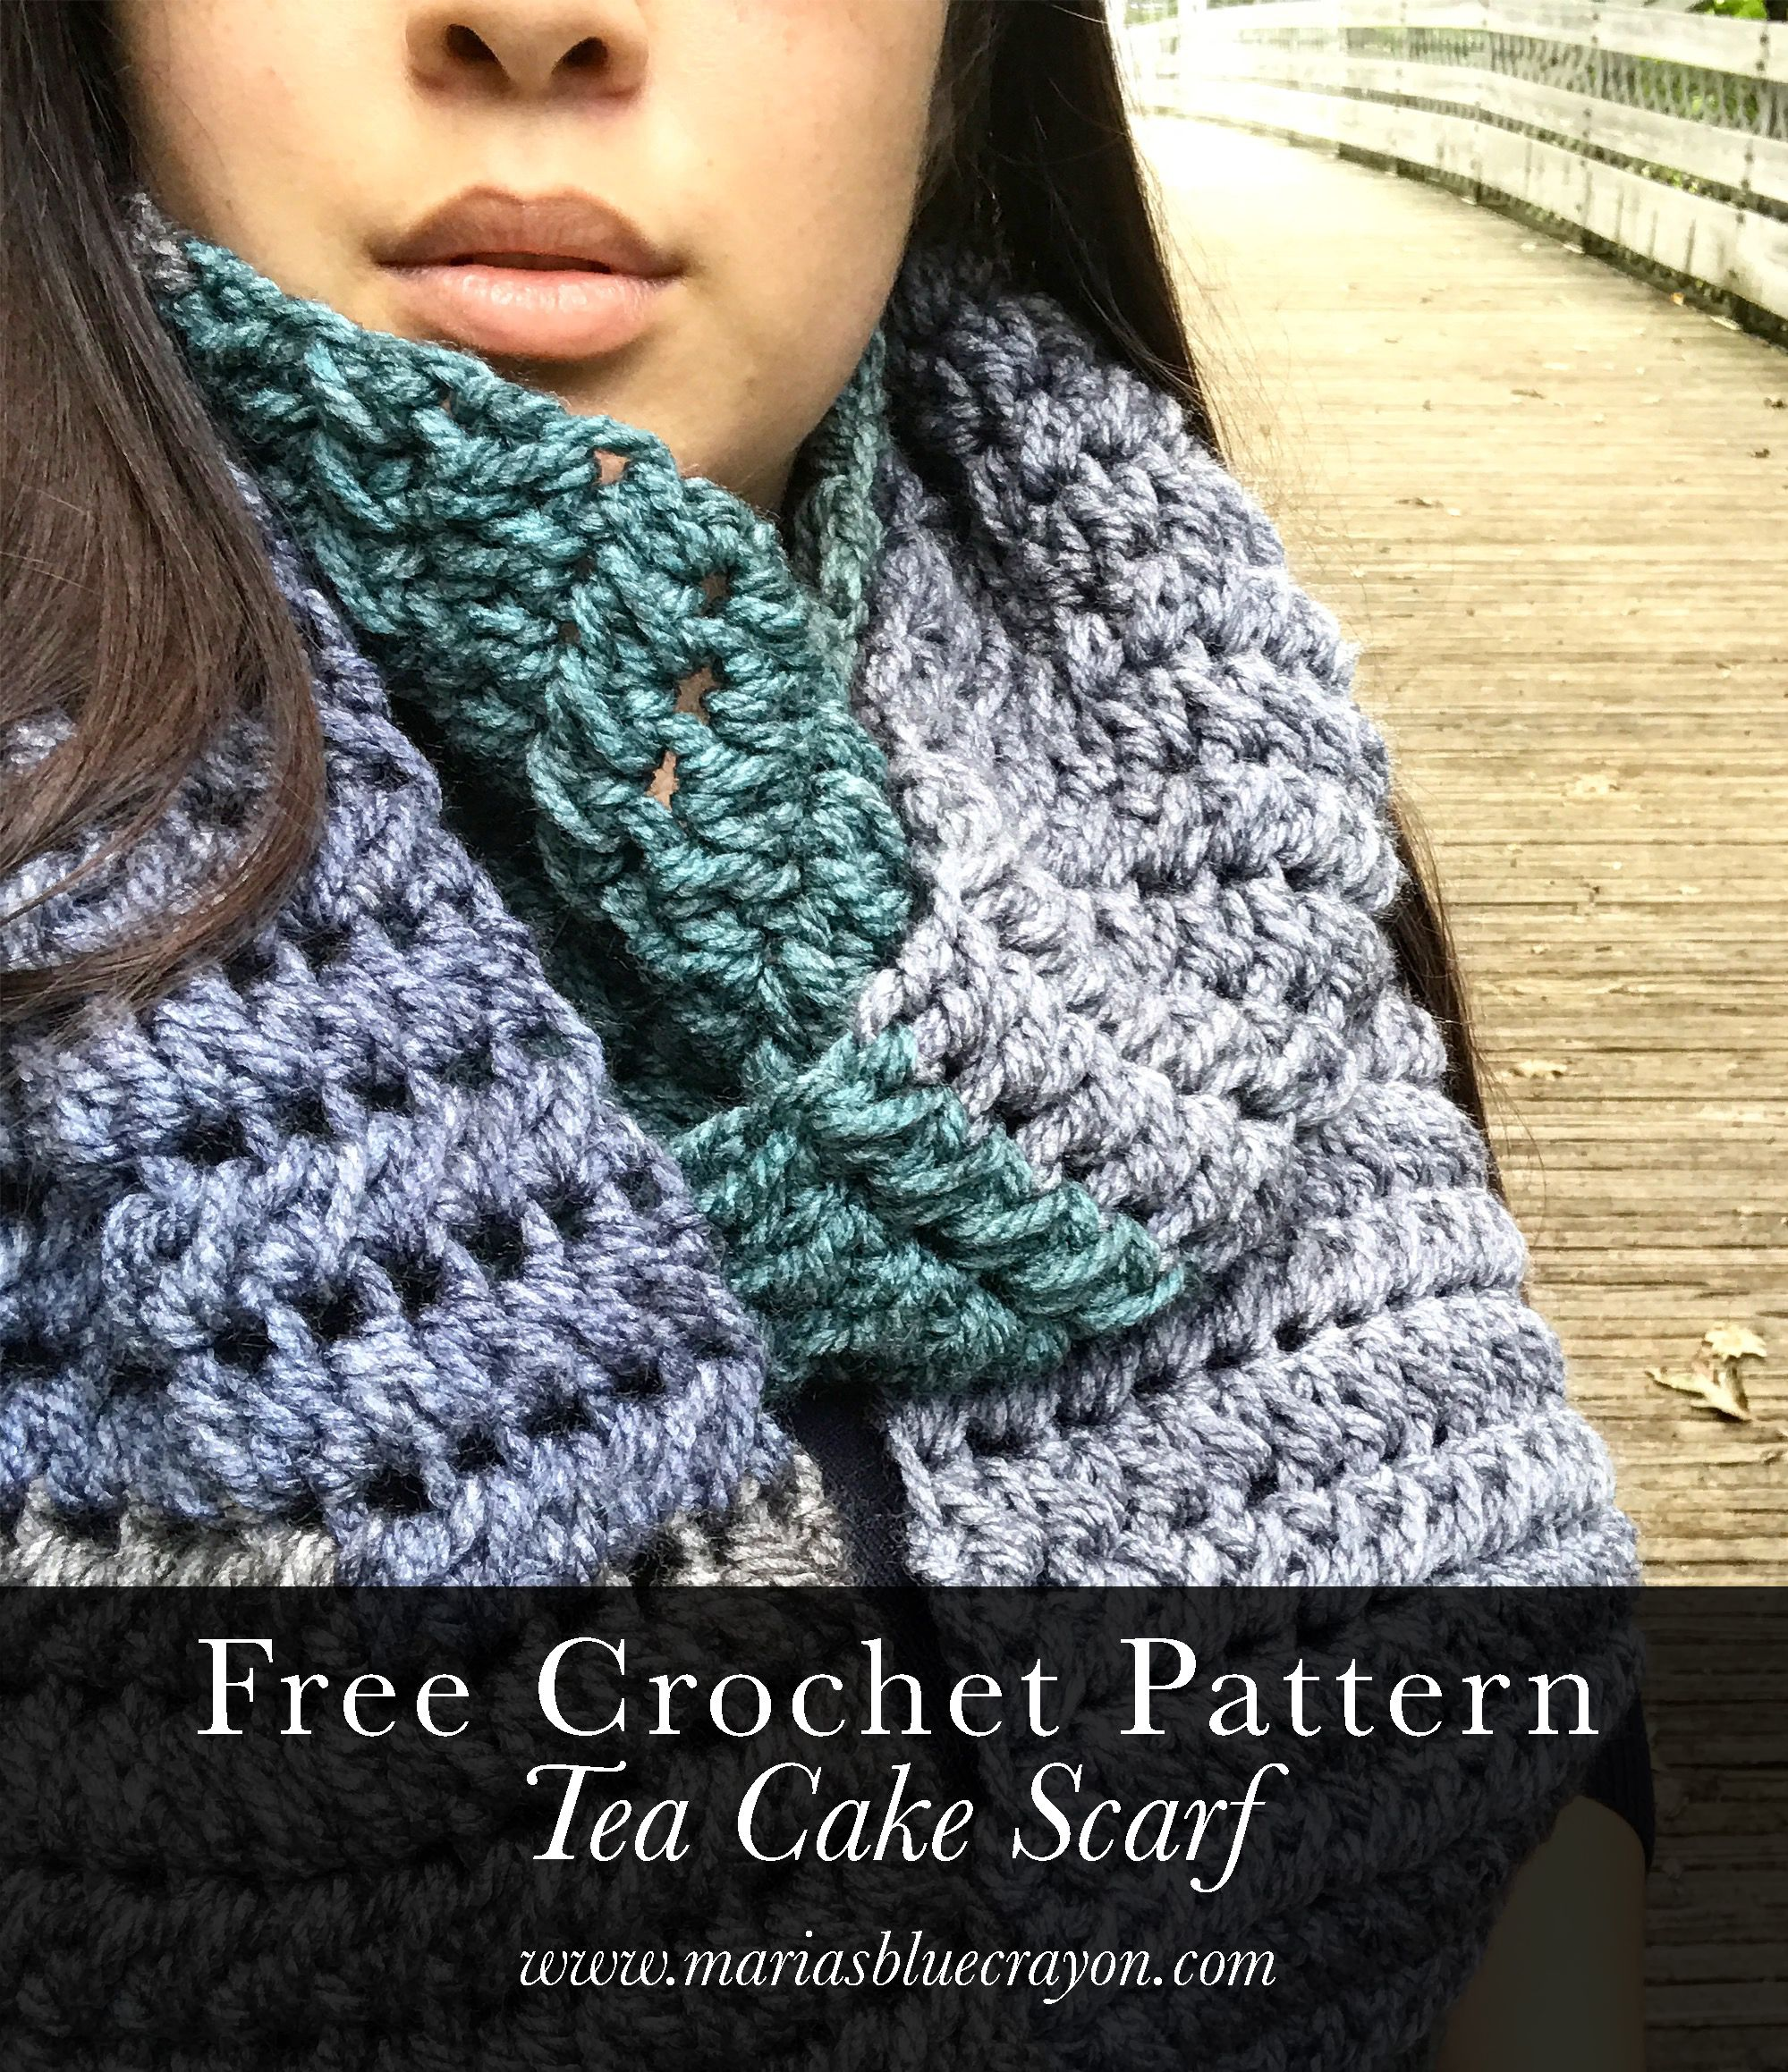 Tea Cake Scarf Crochet Pattern | Pinterest